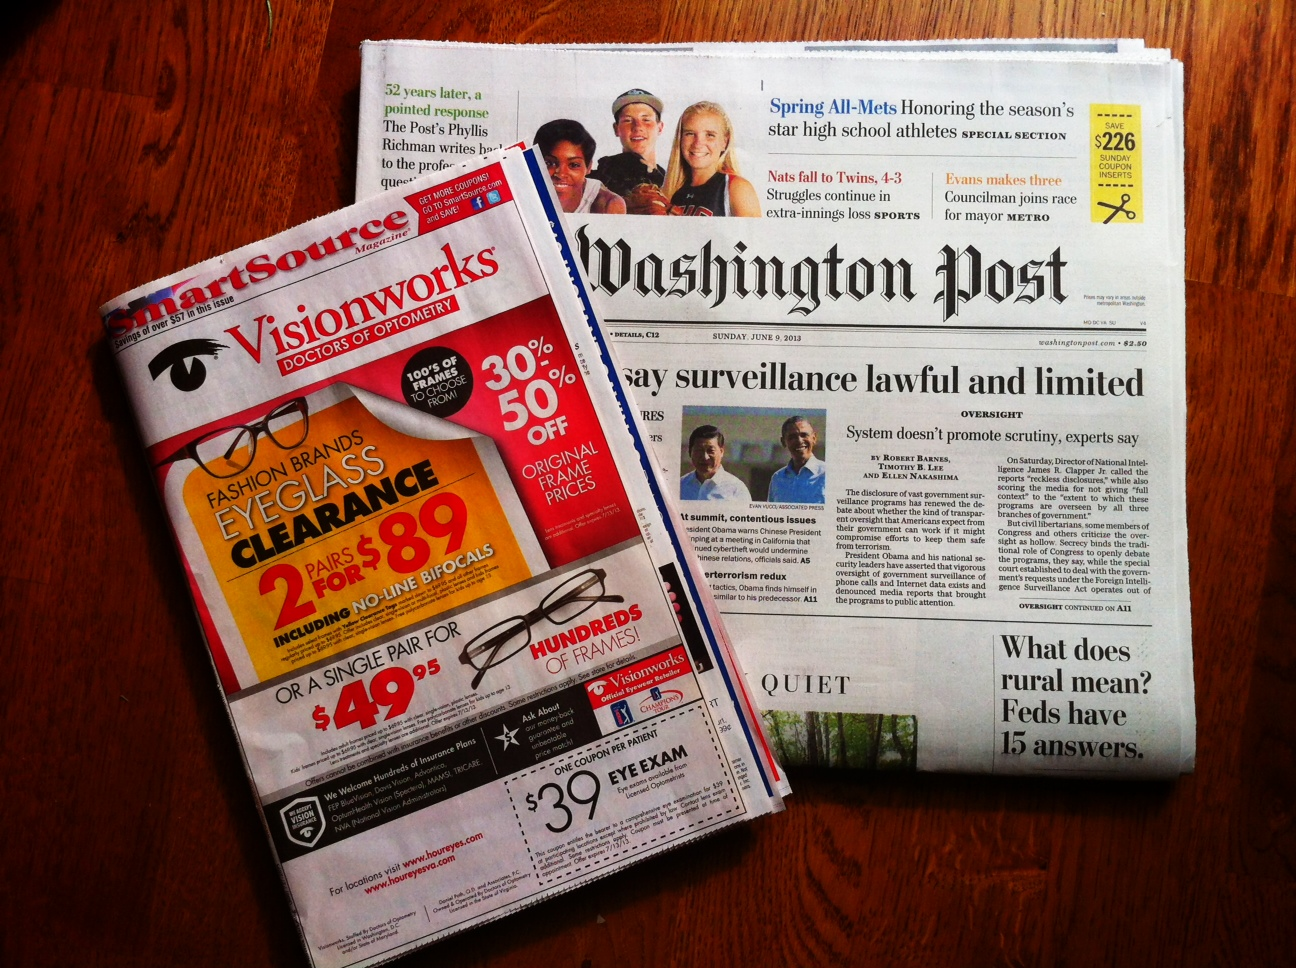 Get 10 Washington Post coupon codes and promo codes at CouponBirds. Click to enjoy the latest deals and coupons of Washington Post and save up to 60% when making purchase at checkout. Shop shopnew-l4xmtyae.tk and enjoy your savings of December, now!